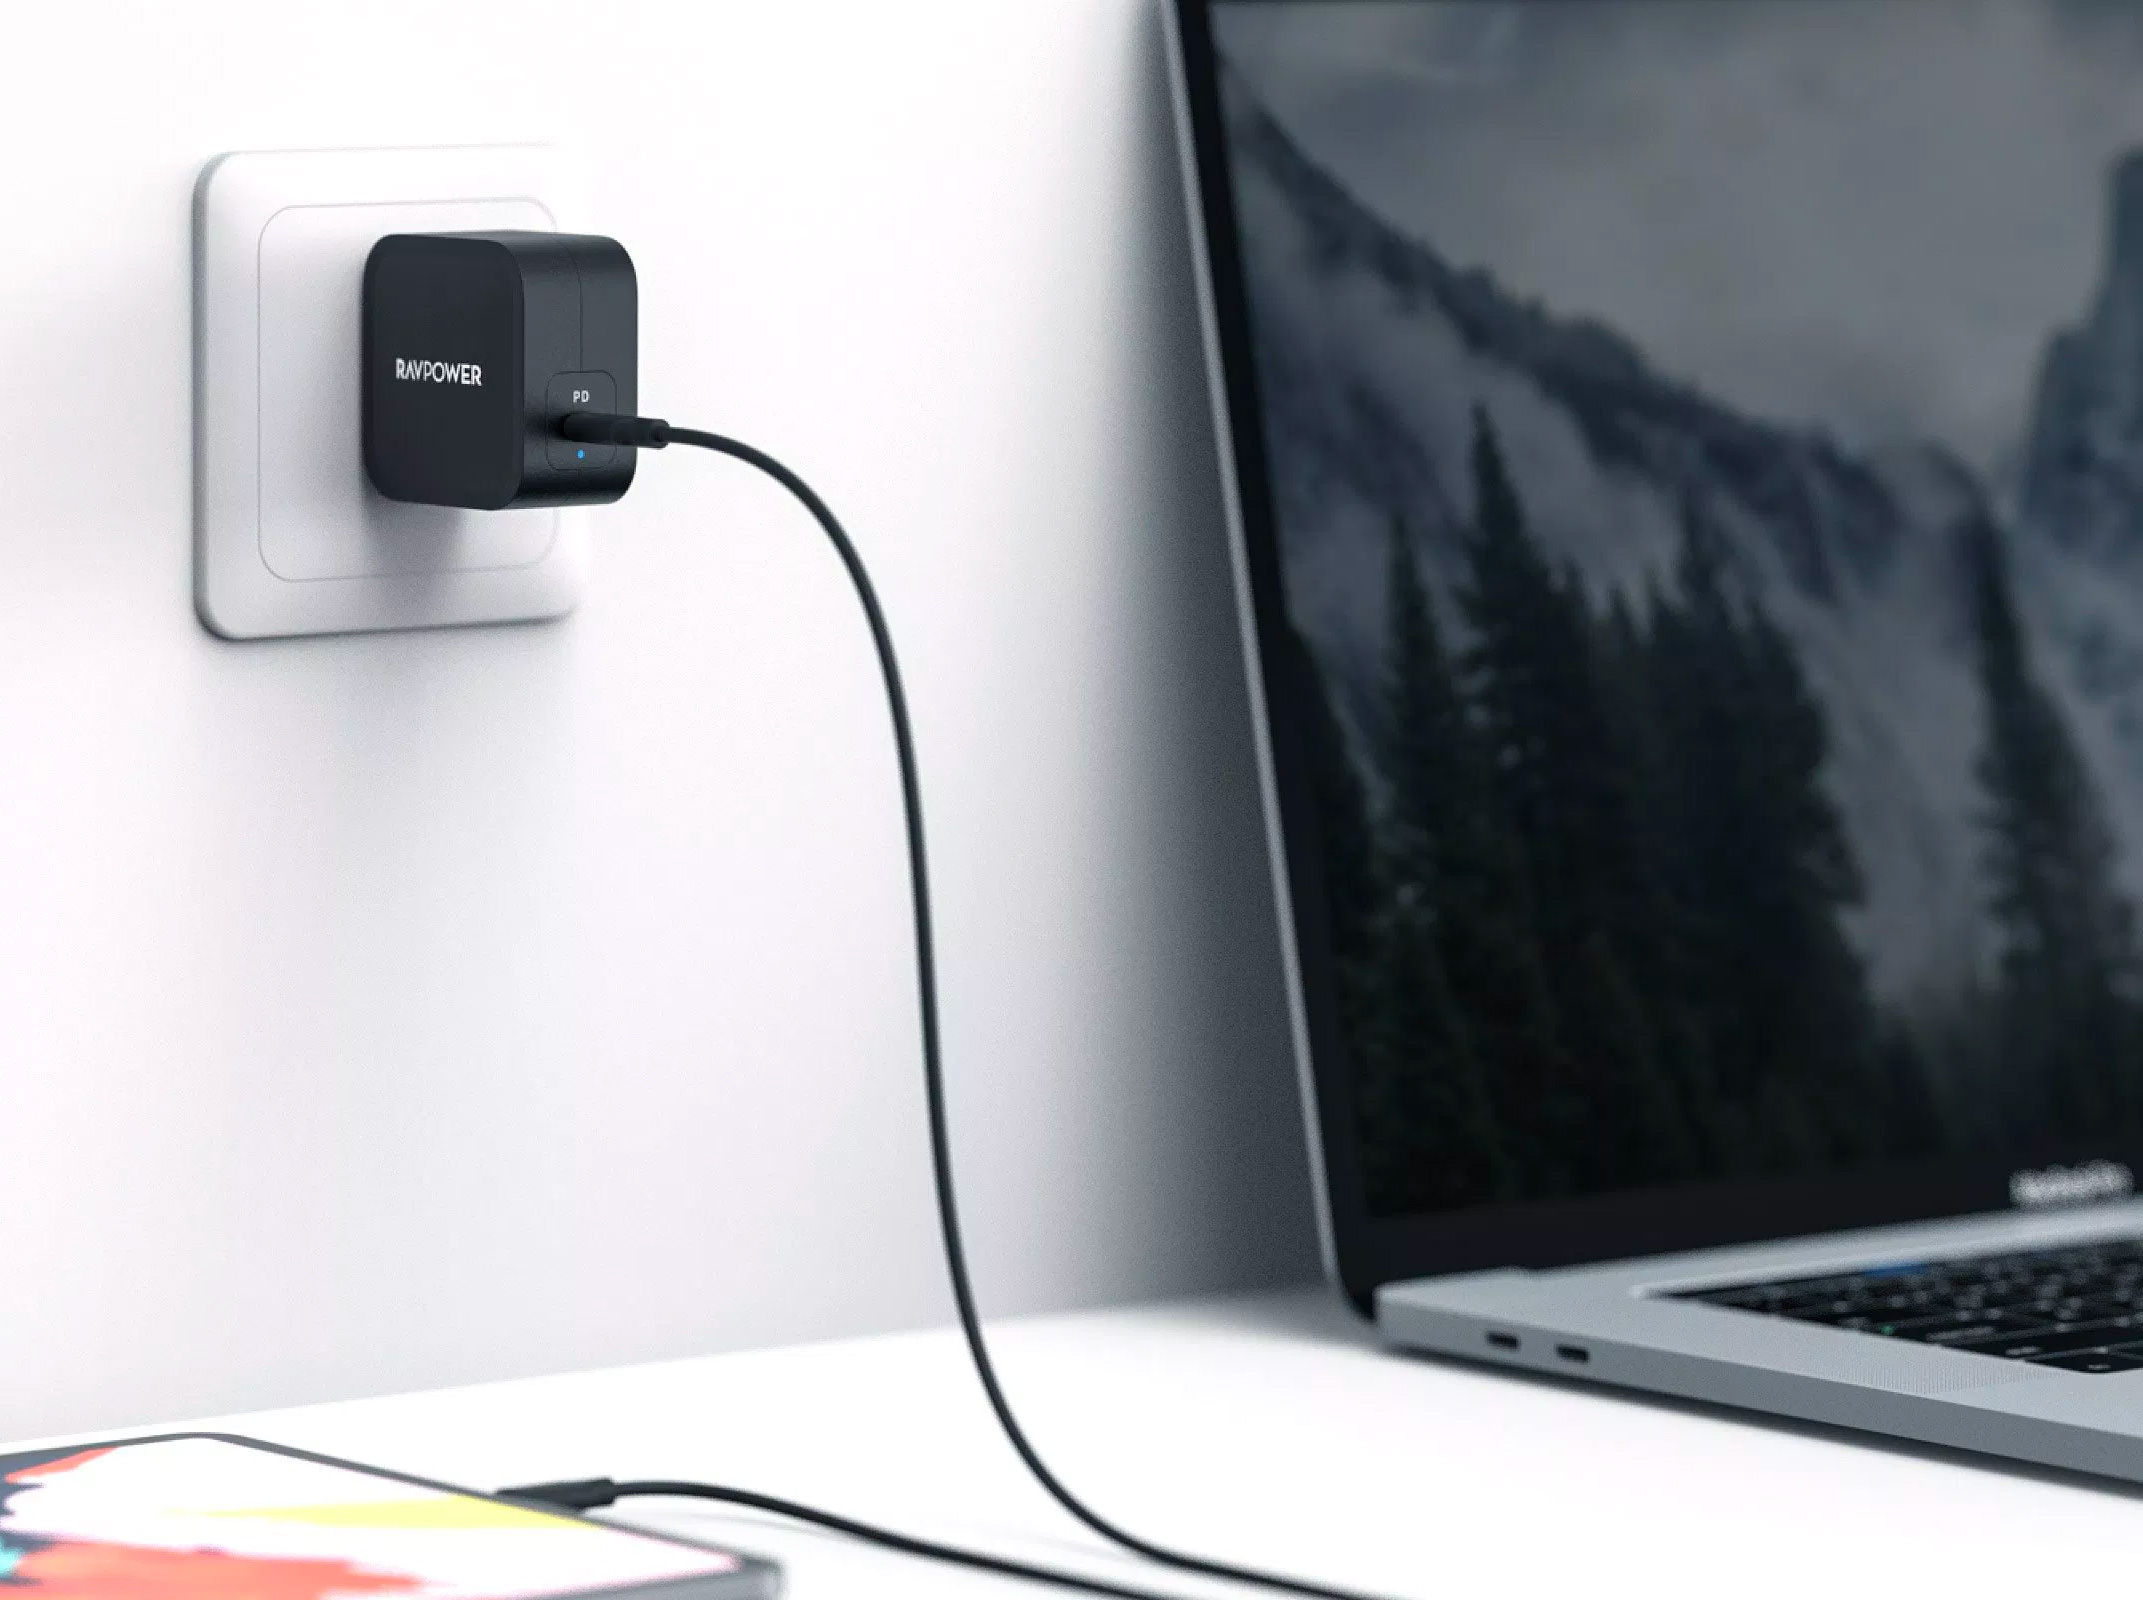 RAVPower Offers a Tiny Portable Macbook Charger at werd.com